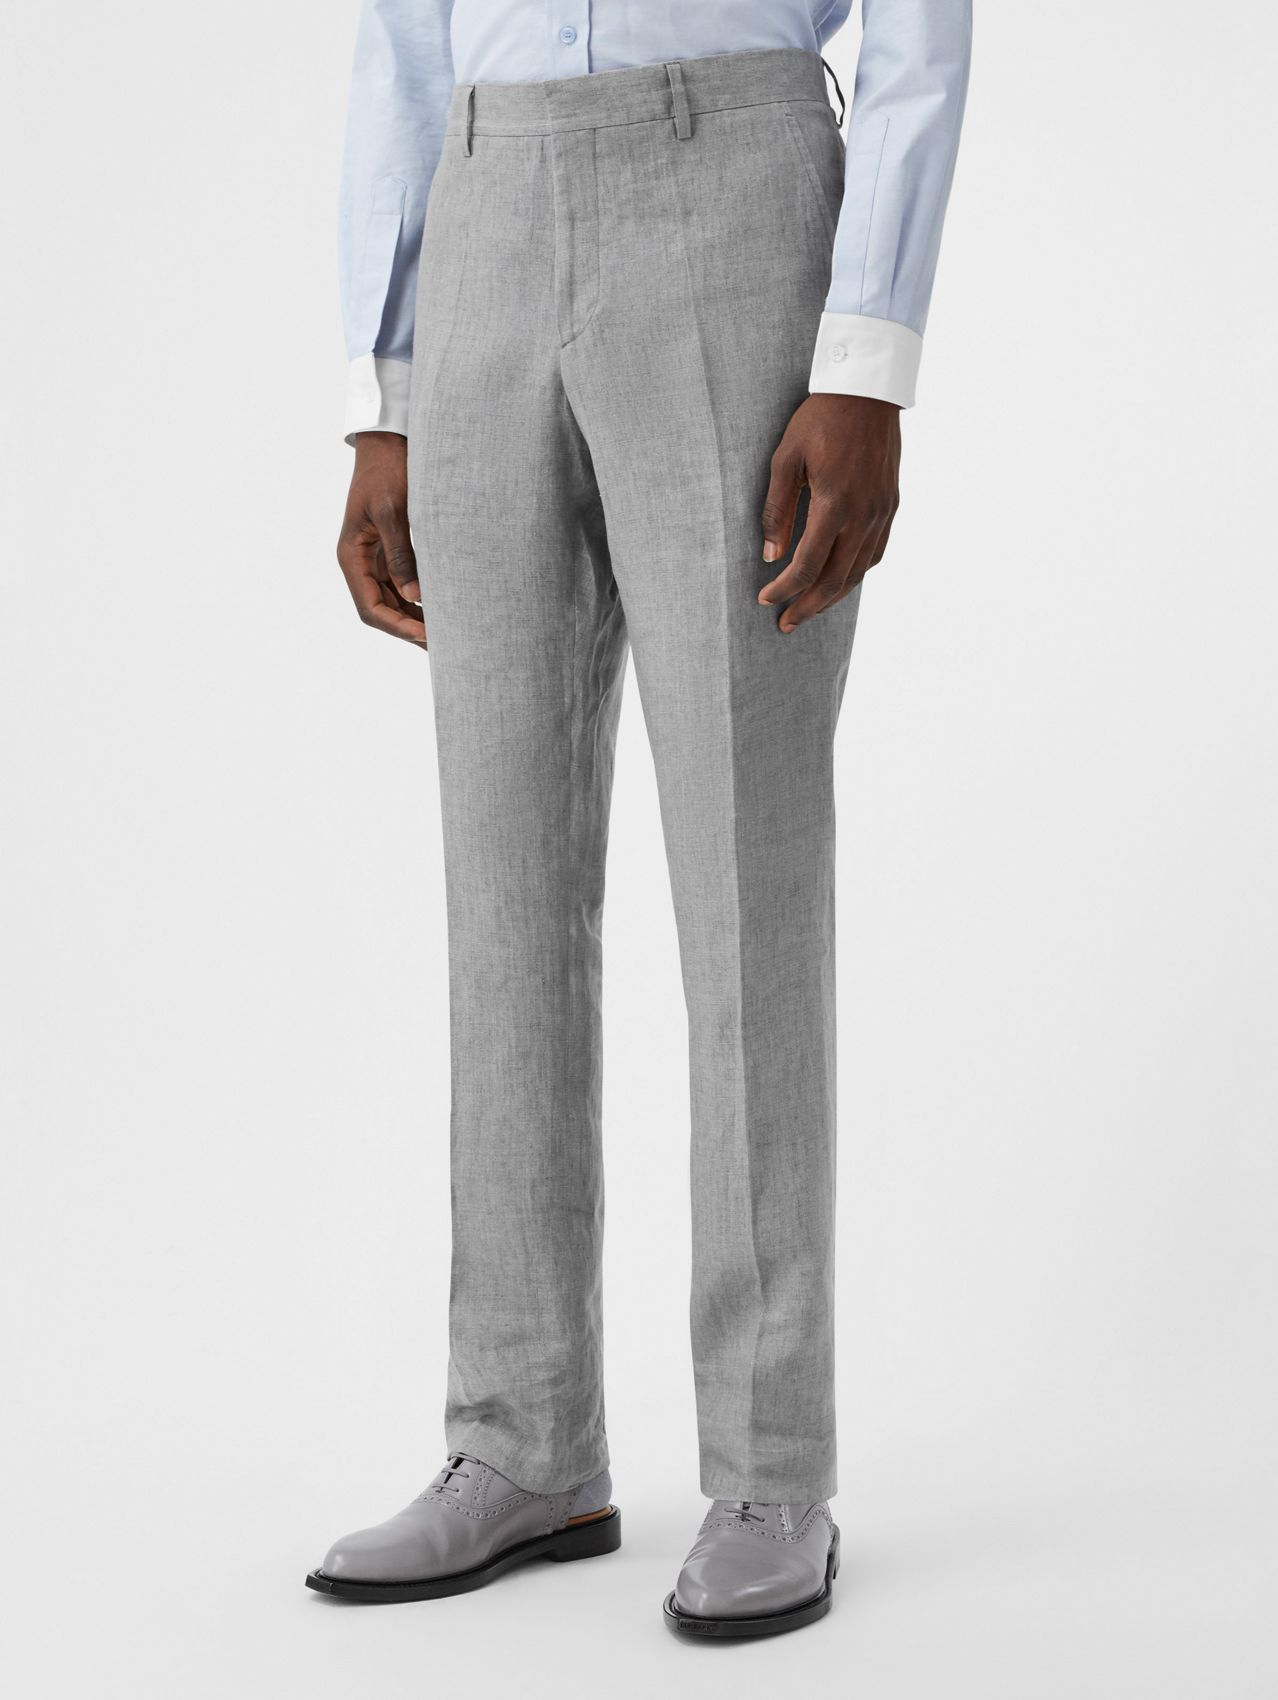 Classic Fit Linen Tailored Trousers in Heather Melange